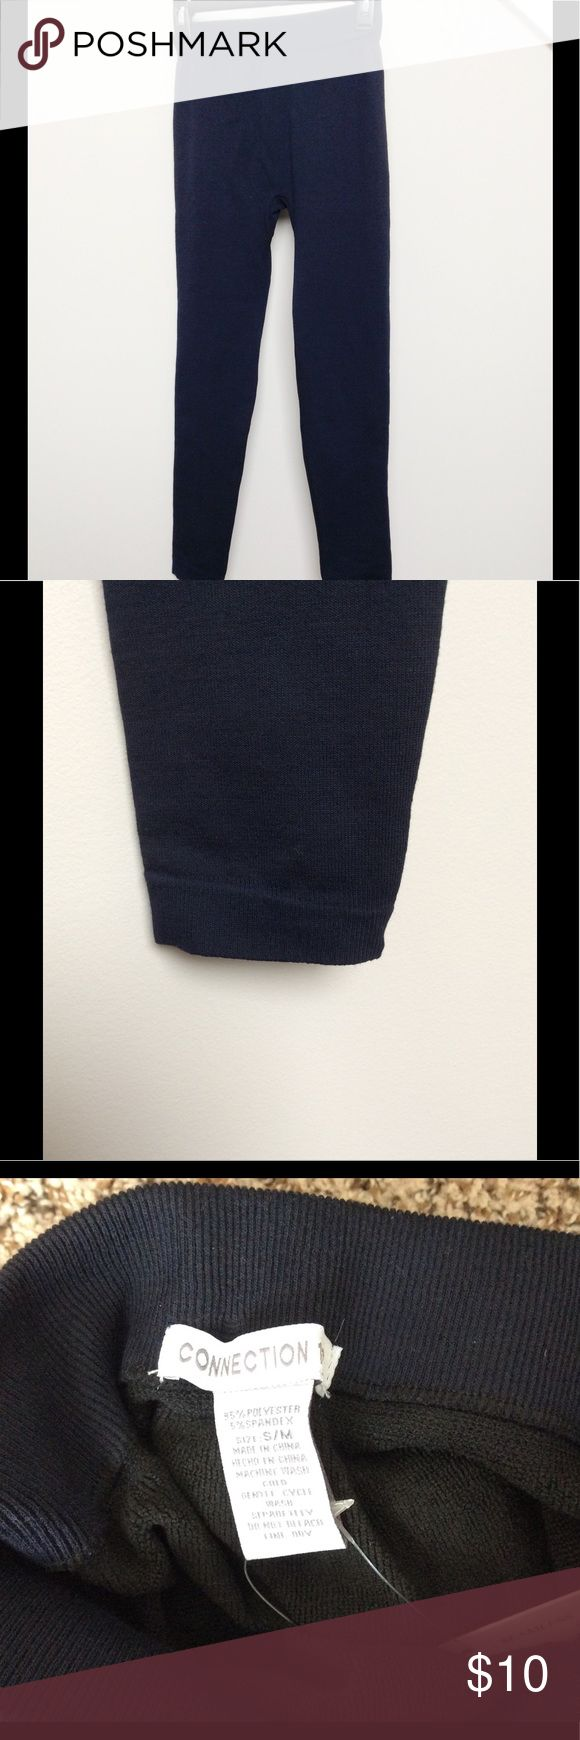 """Black NWT Leggings, Size S Thick black leggings that are NWT.  Size on tag says """"S/M"""" but they fit more like a small.  Elastic waistband and elastic cuffs at the bottom (see photo).  Inseam is 26.5, so they may fit more like capri leggings (unless you are a shortie like me!).  Material is thicker (kind of feels like sweatpants on the outside). Pants Leggings"""